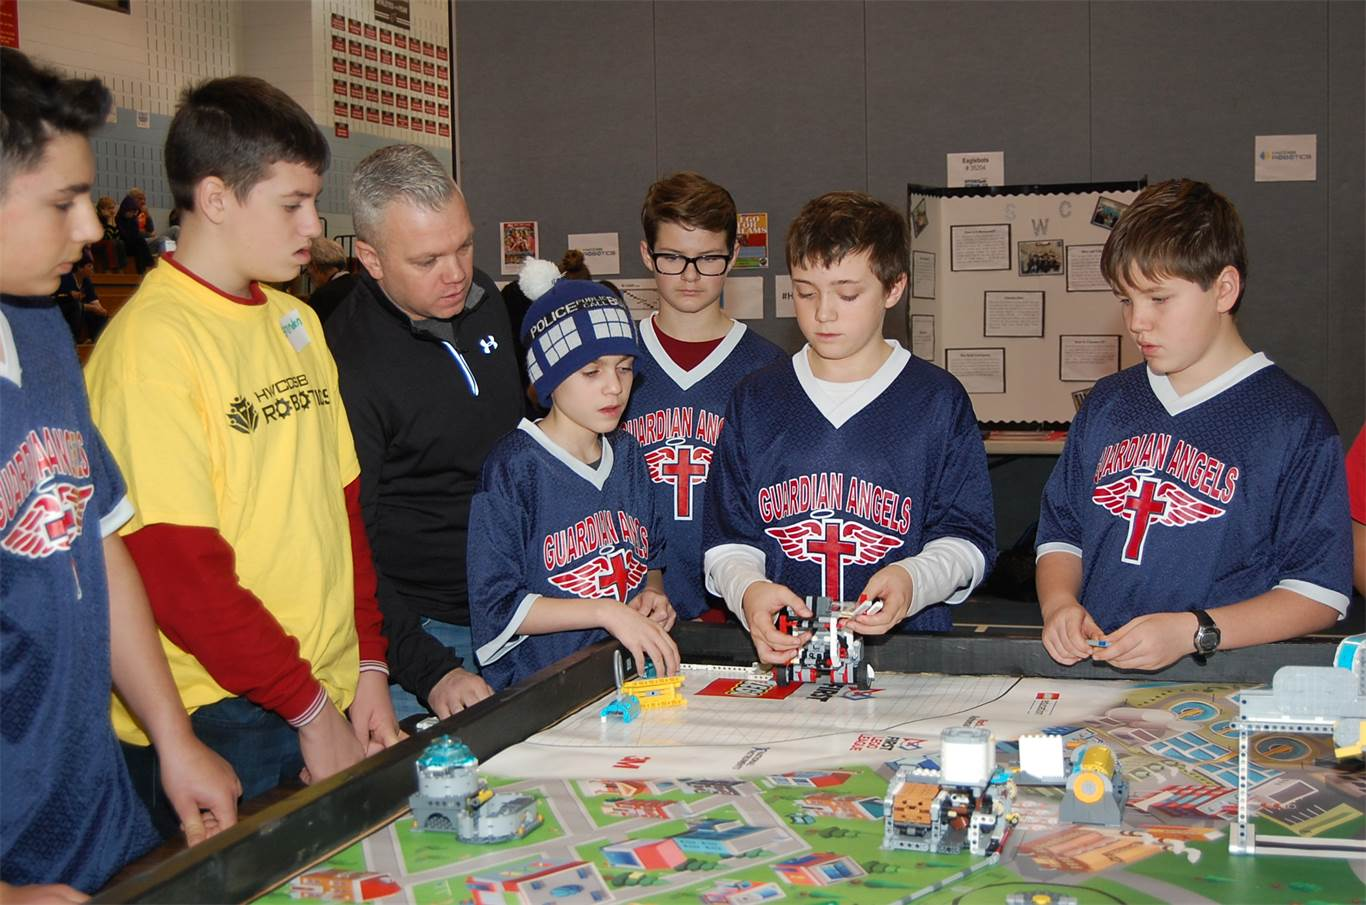 Members of the Guardian Angels robotics team play the